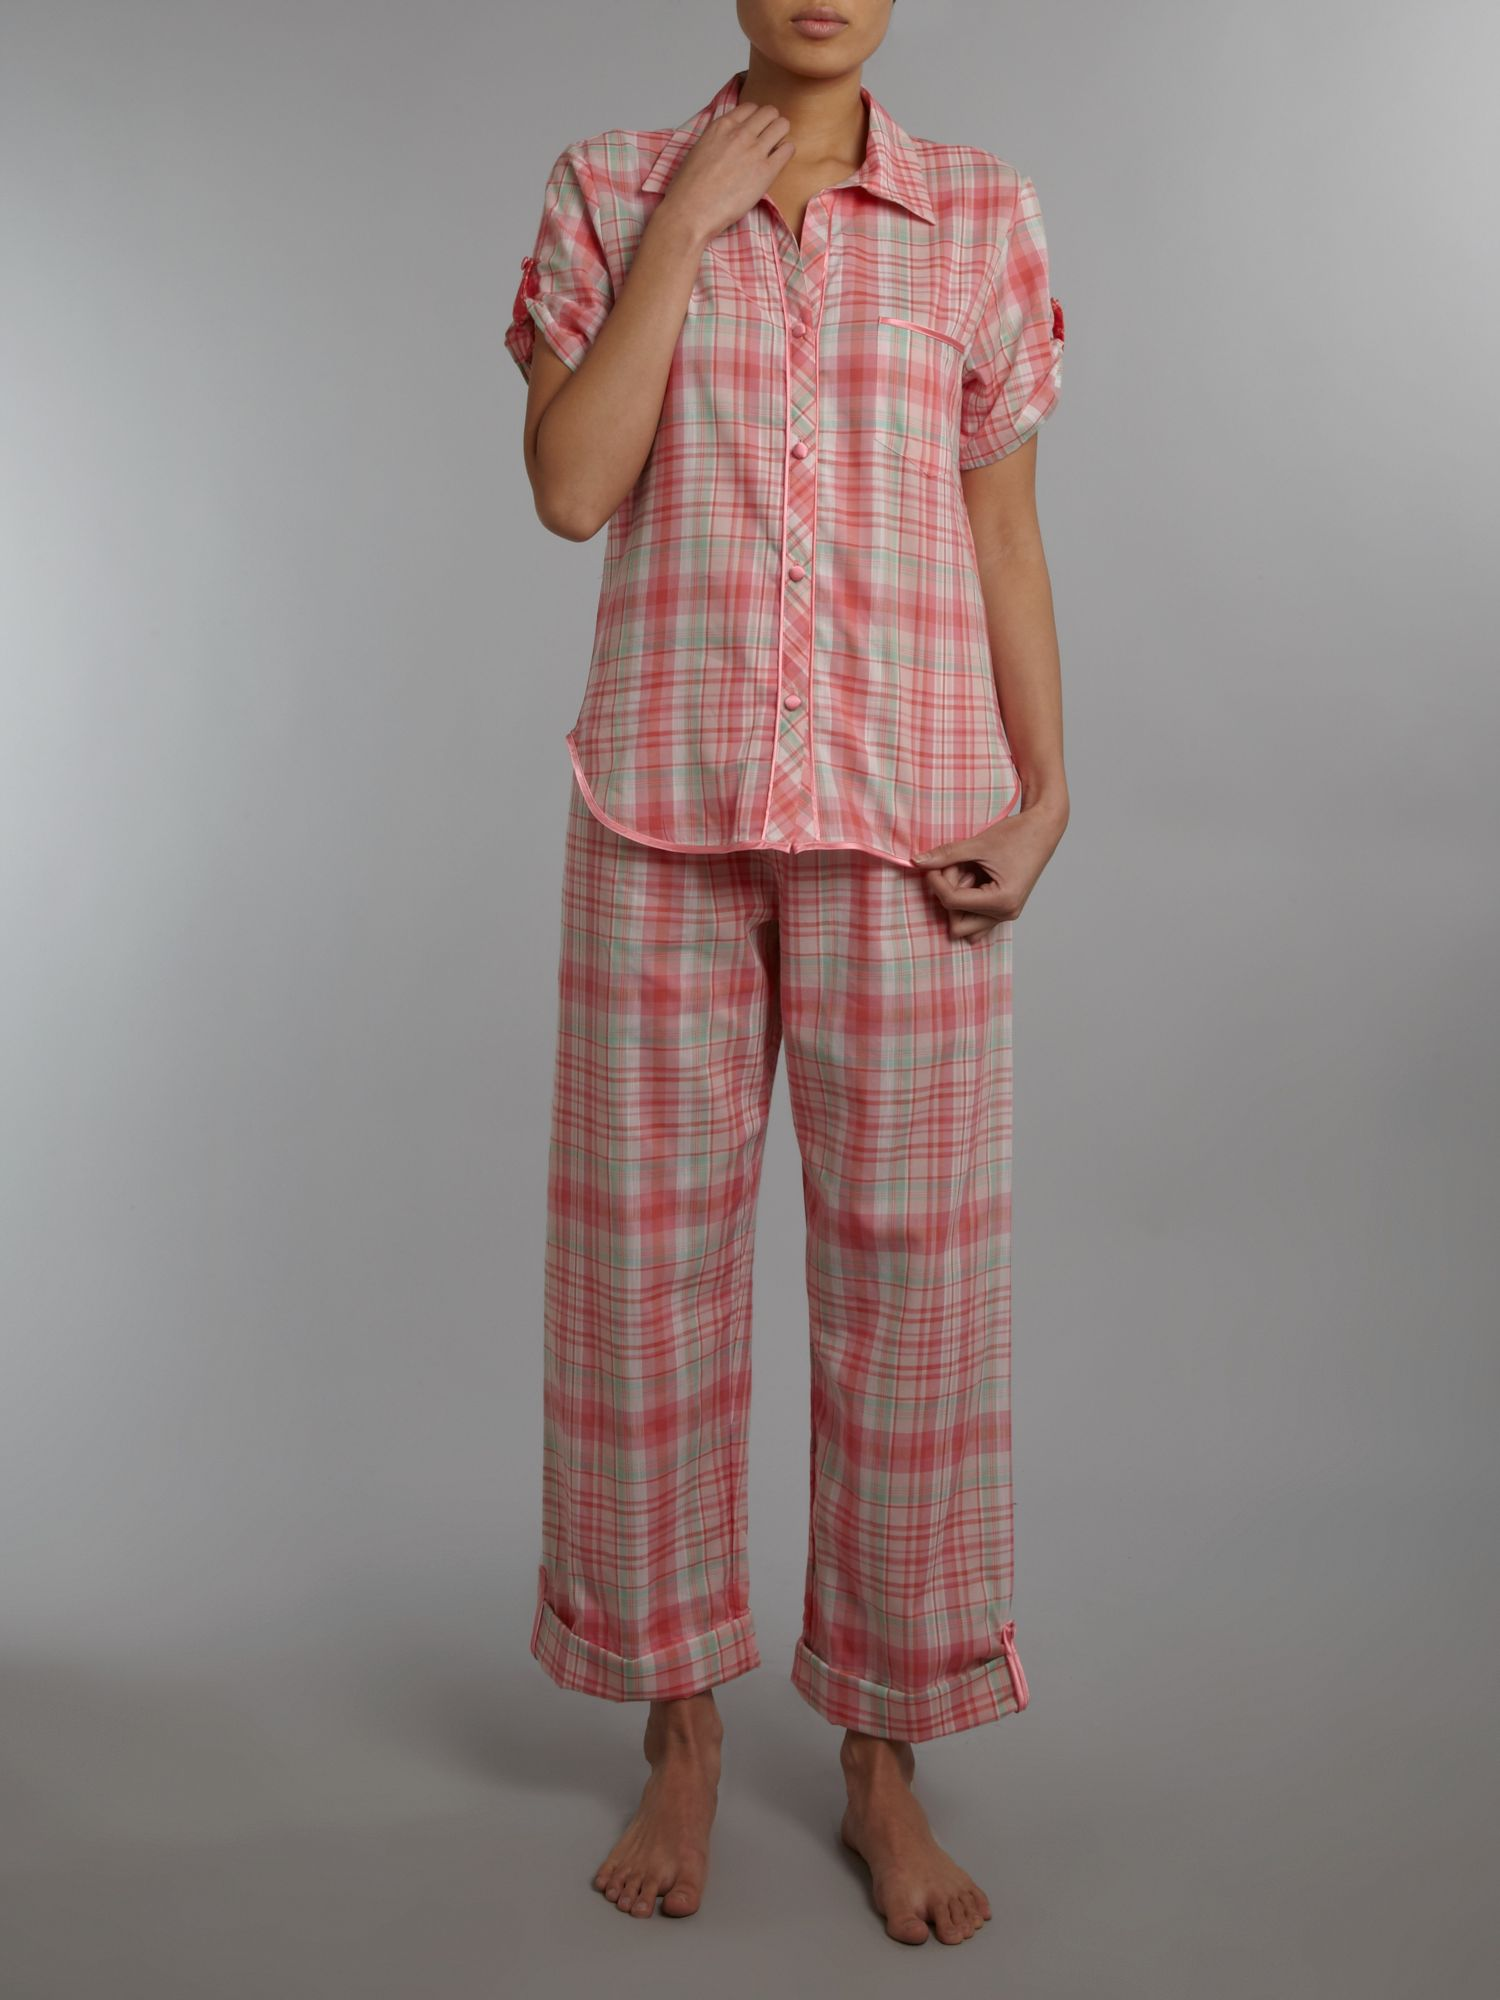 Strawberry fields pj pant